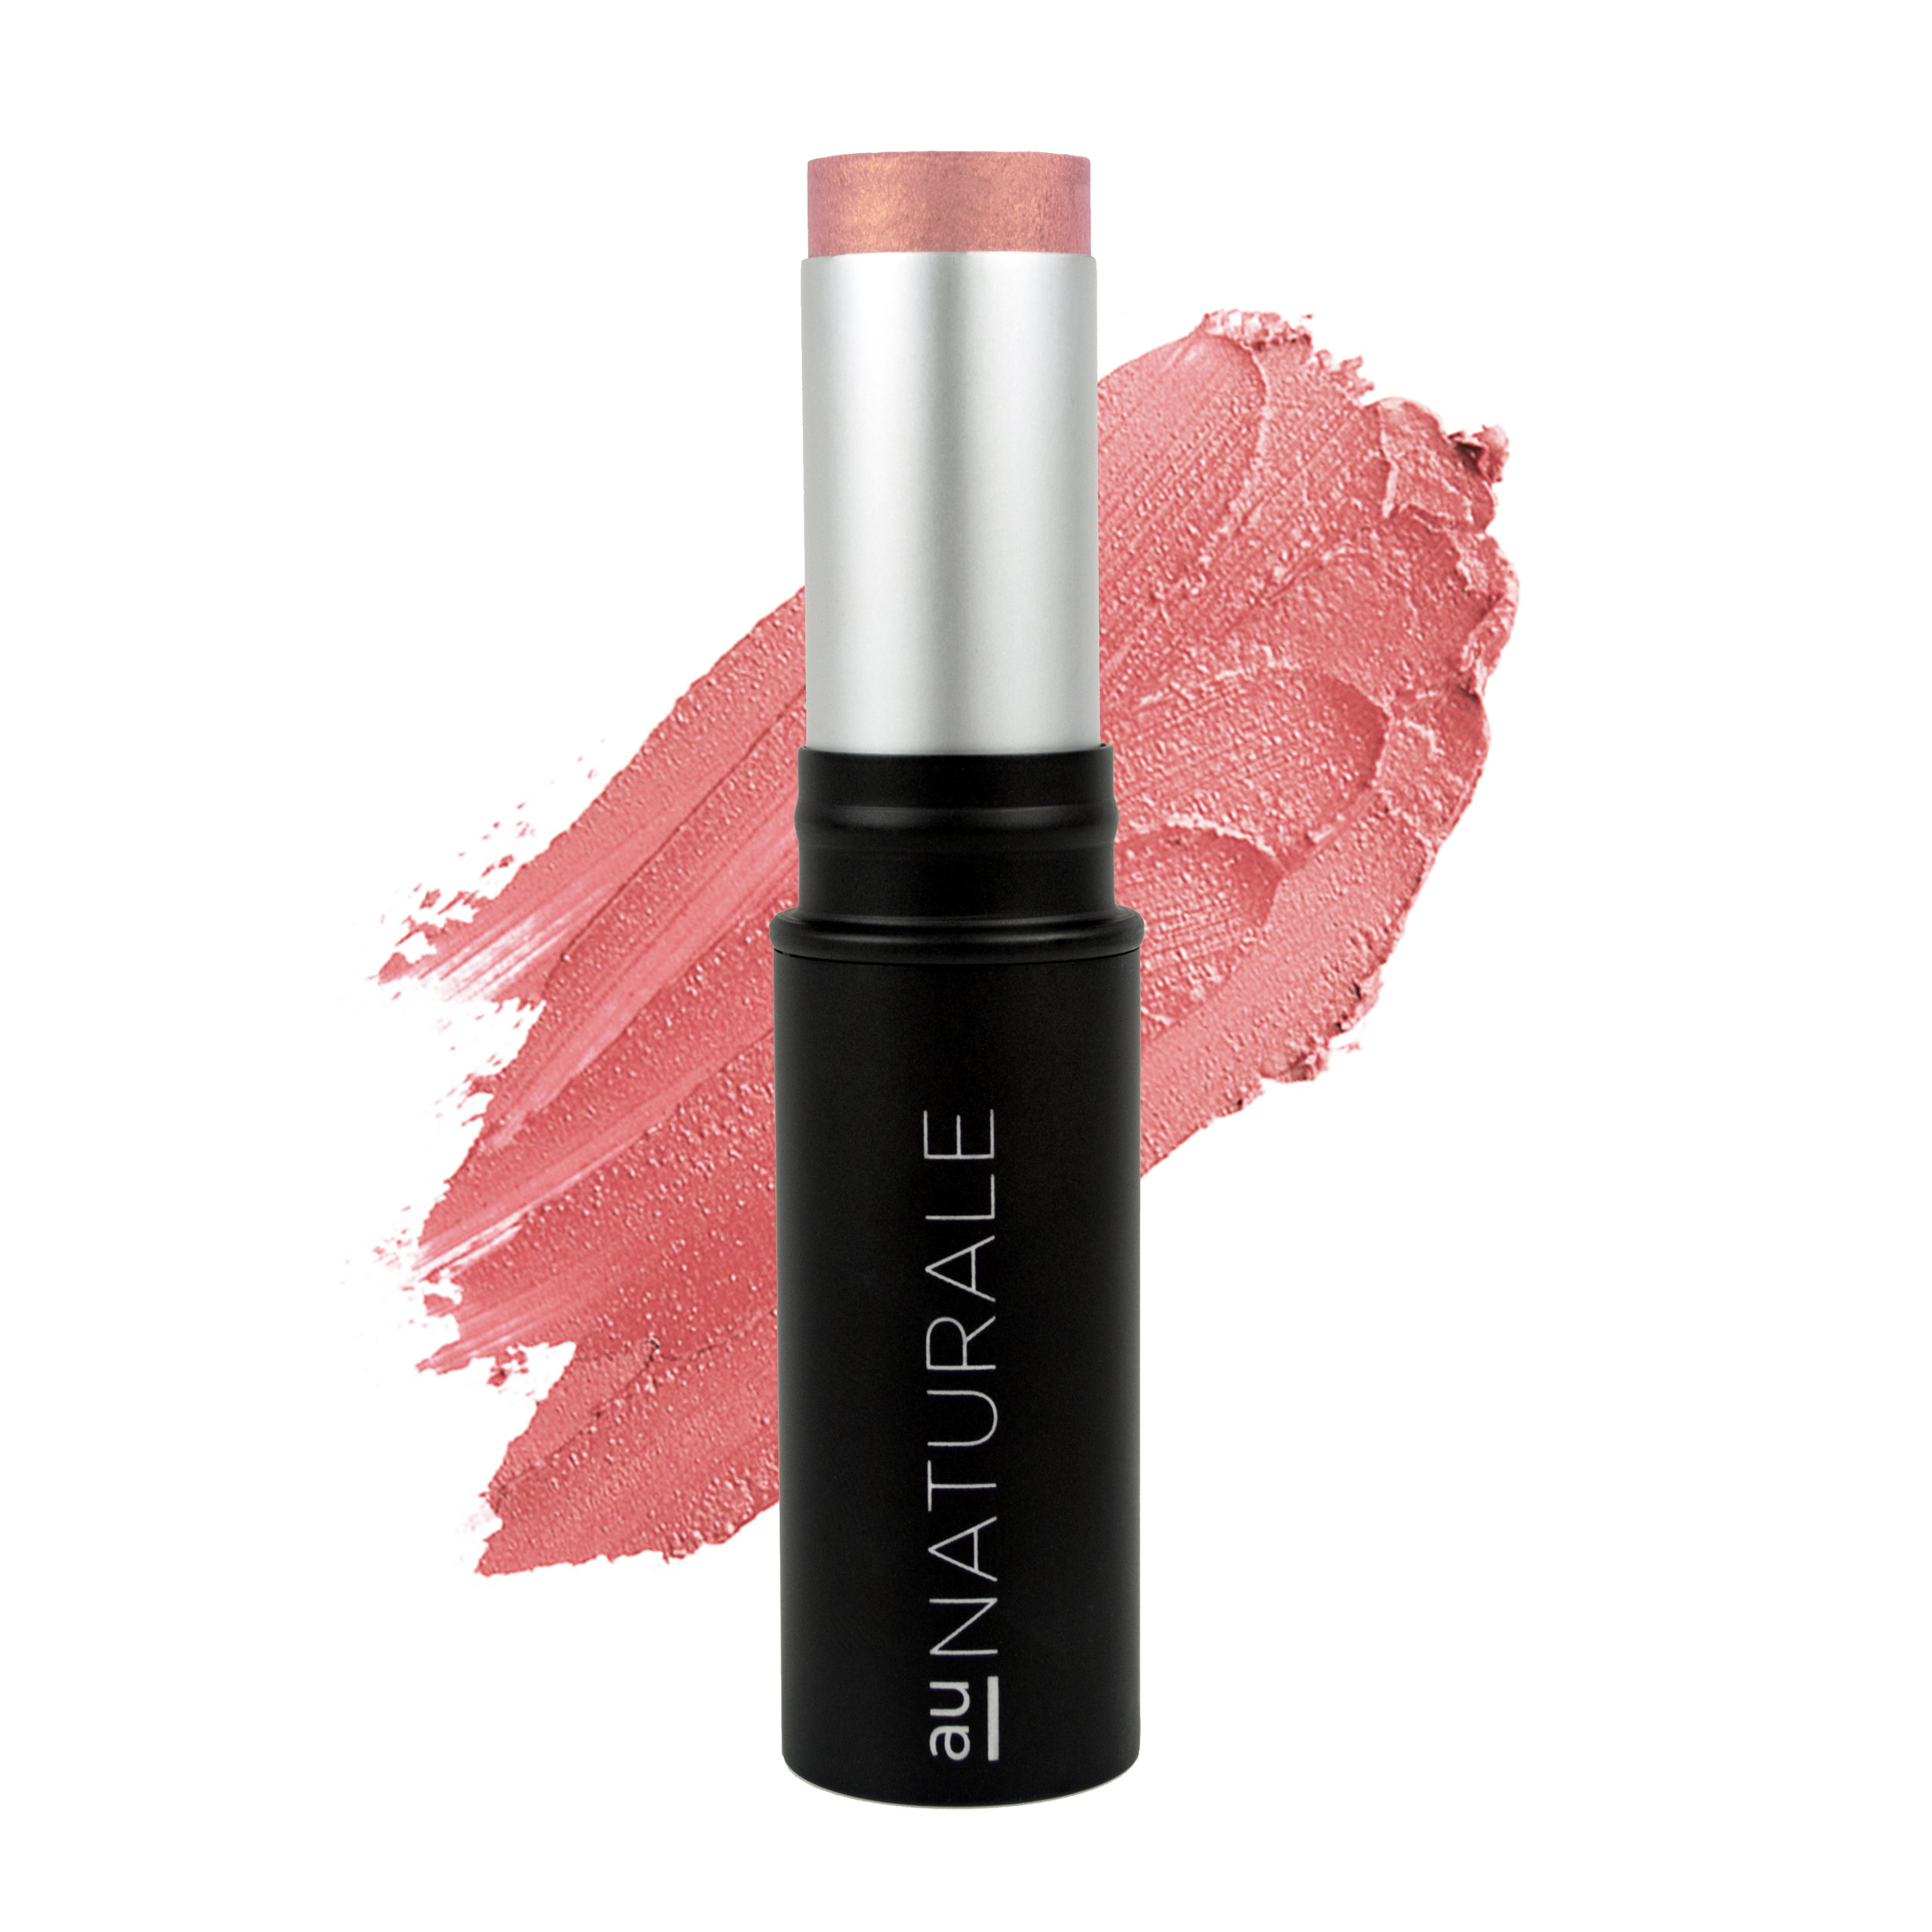 Grapefruit The Anywhere Creme Multistick